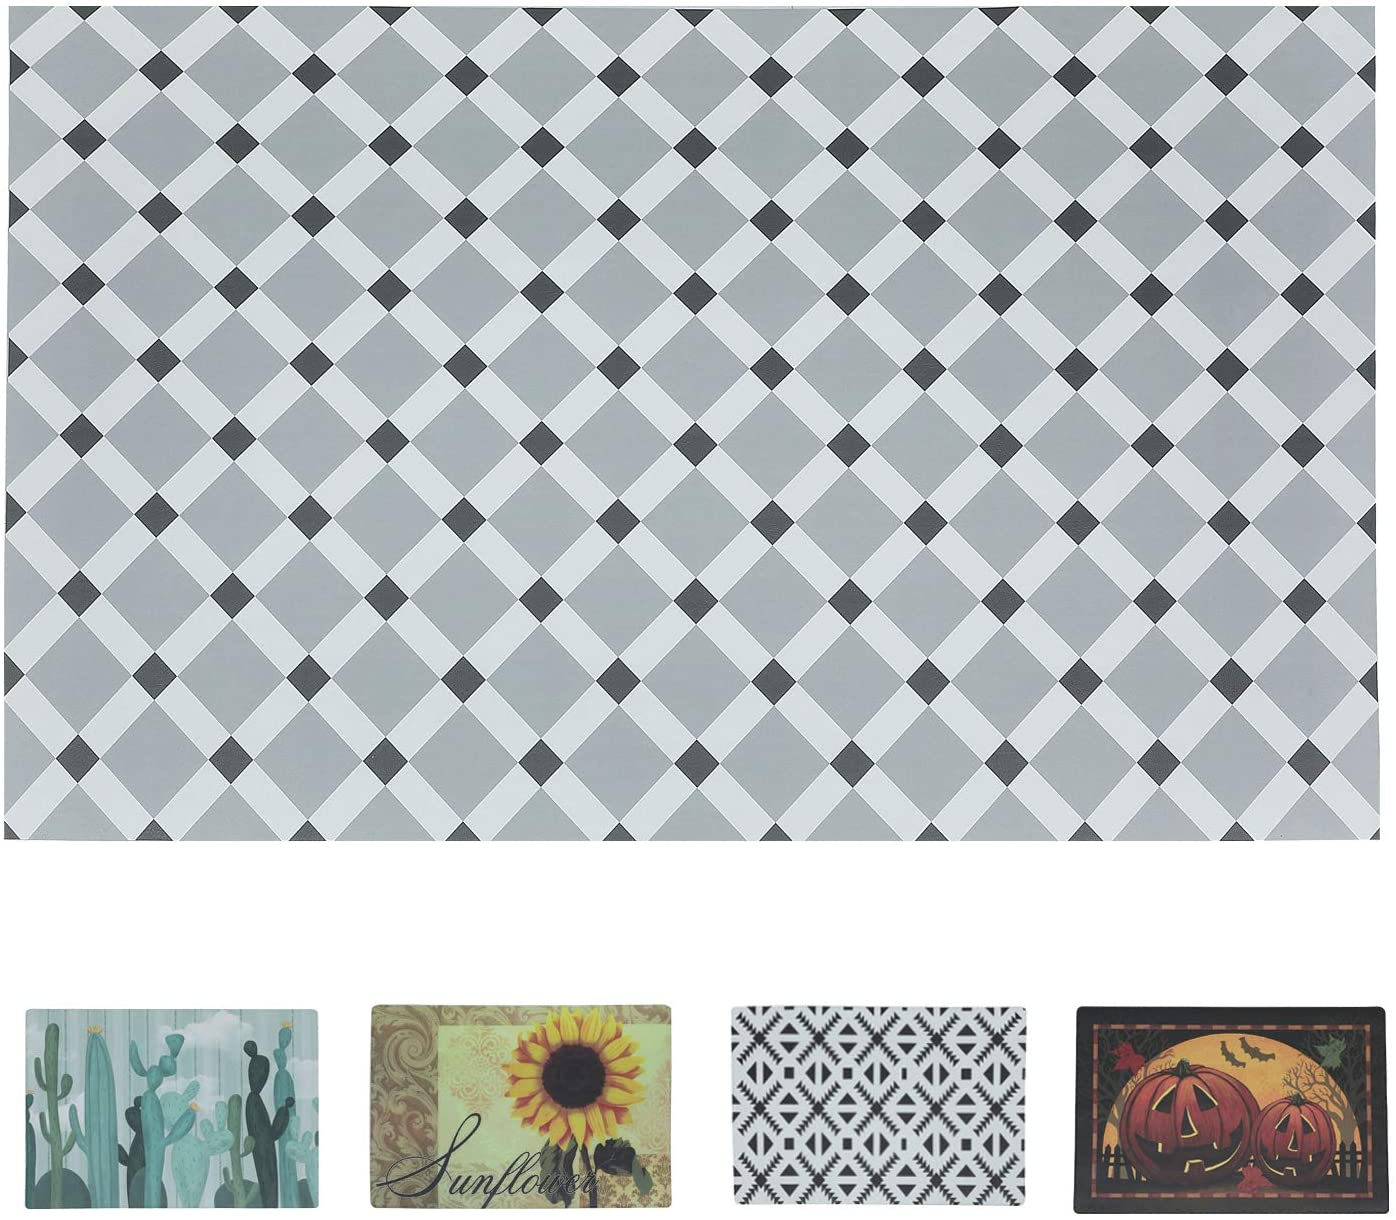 Comfort Mat Waterproof and Non-Slip Geometric Pattern Color Printing Suitable for Kitchen,Living Room,Bedroom,Doorway (3ft5ft, Grey-White)